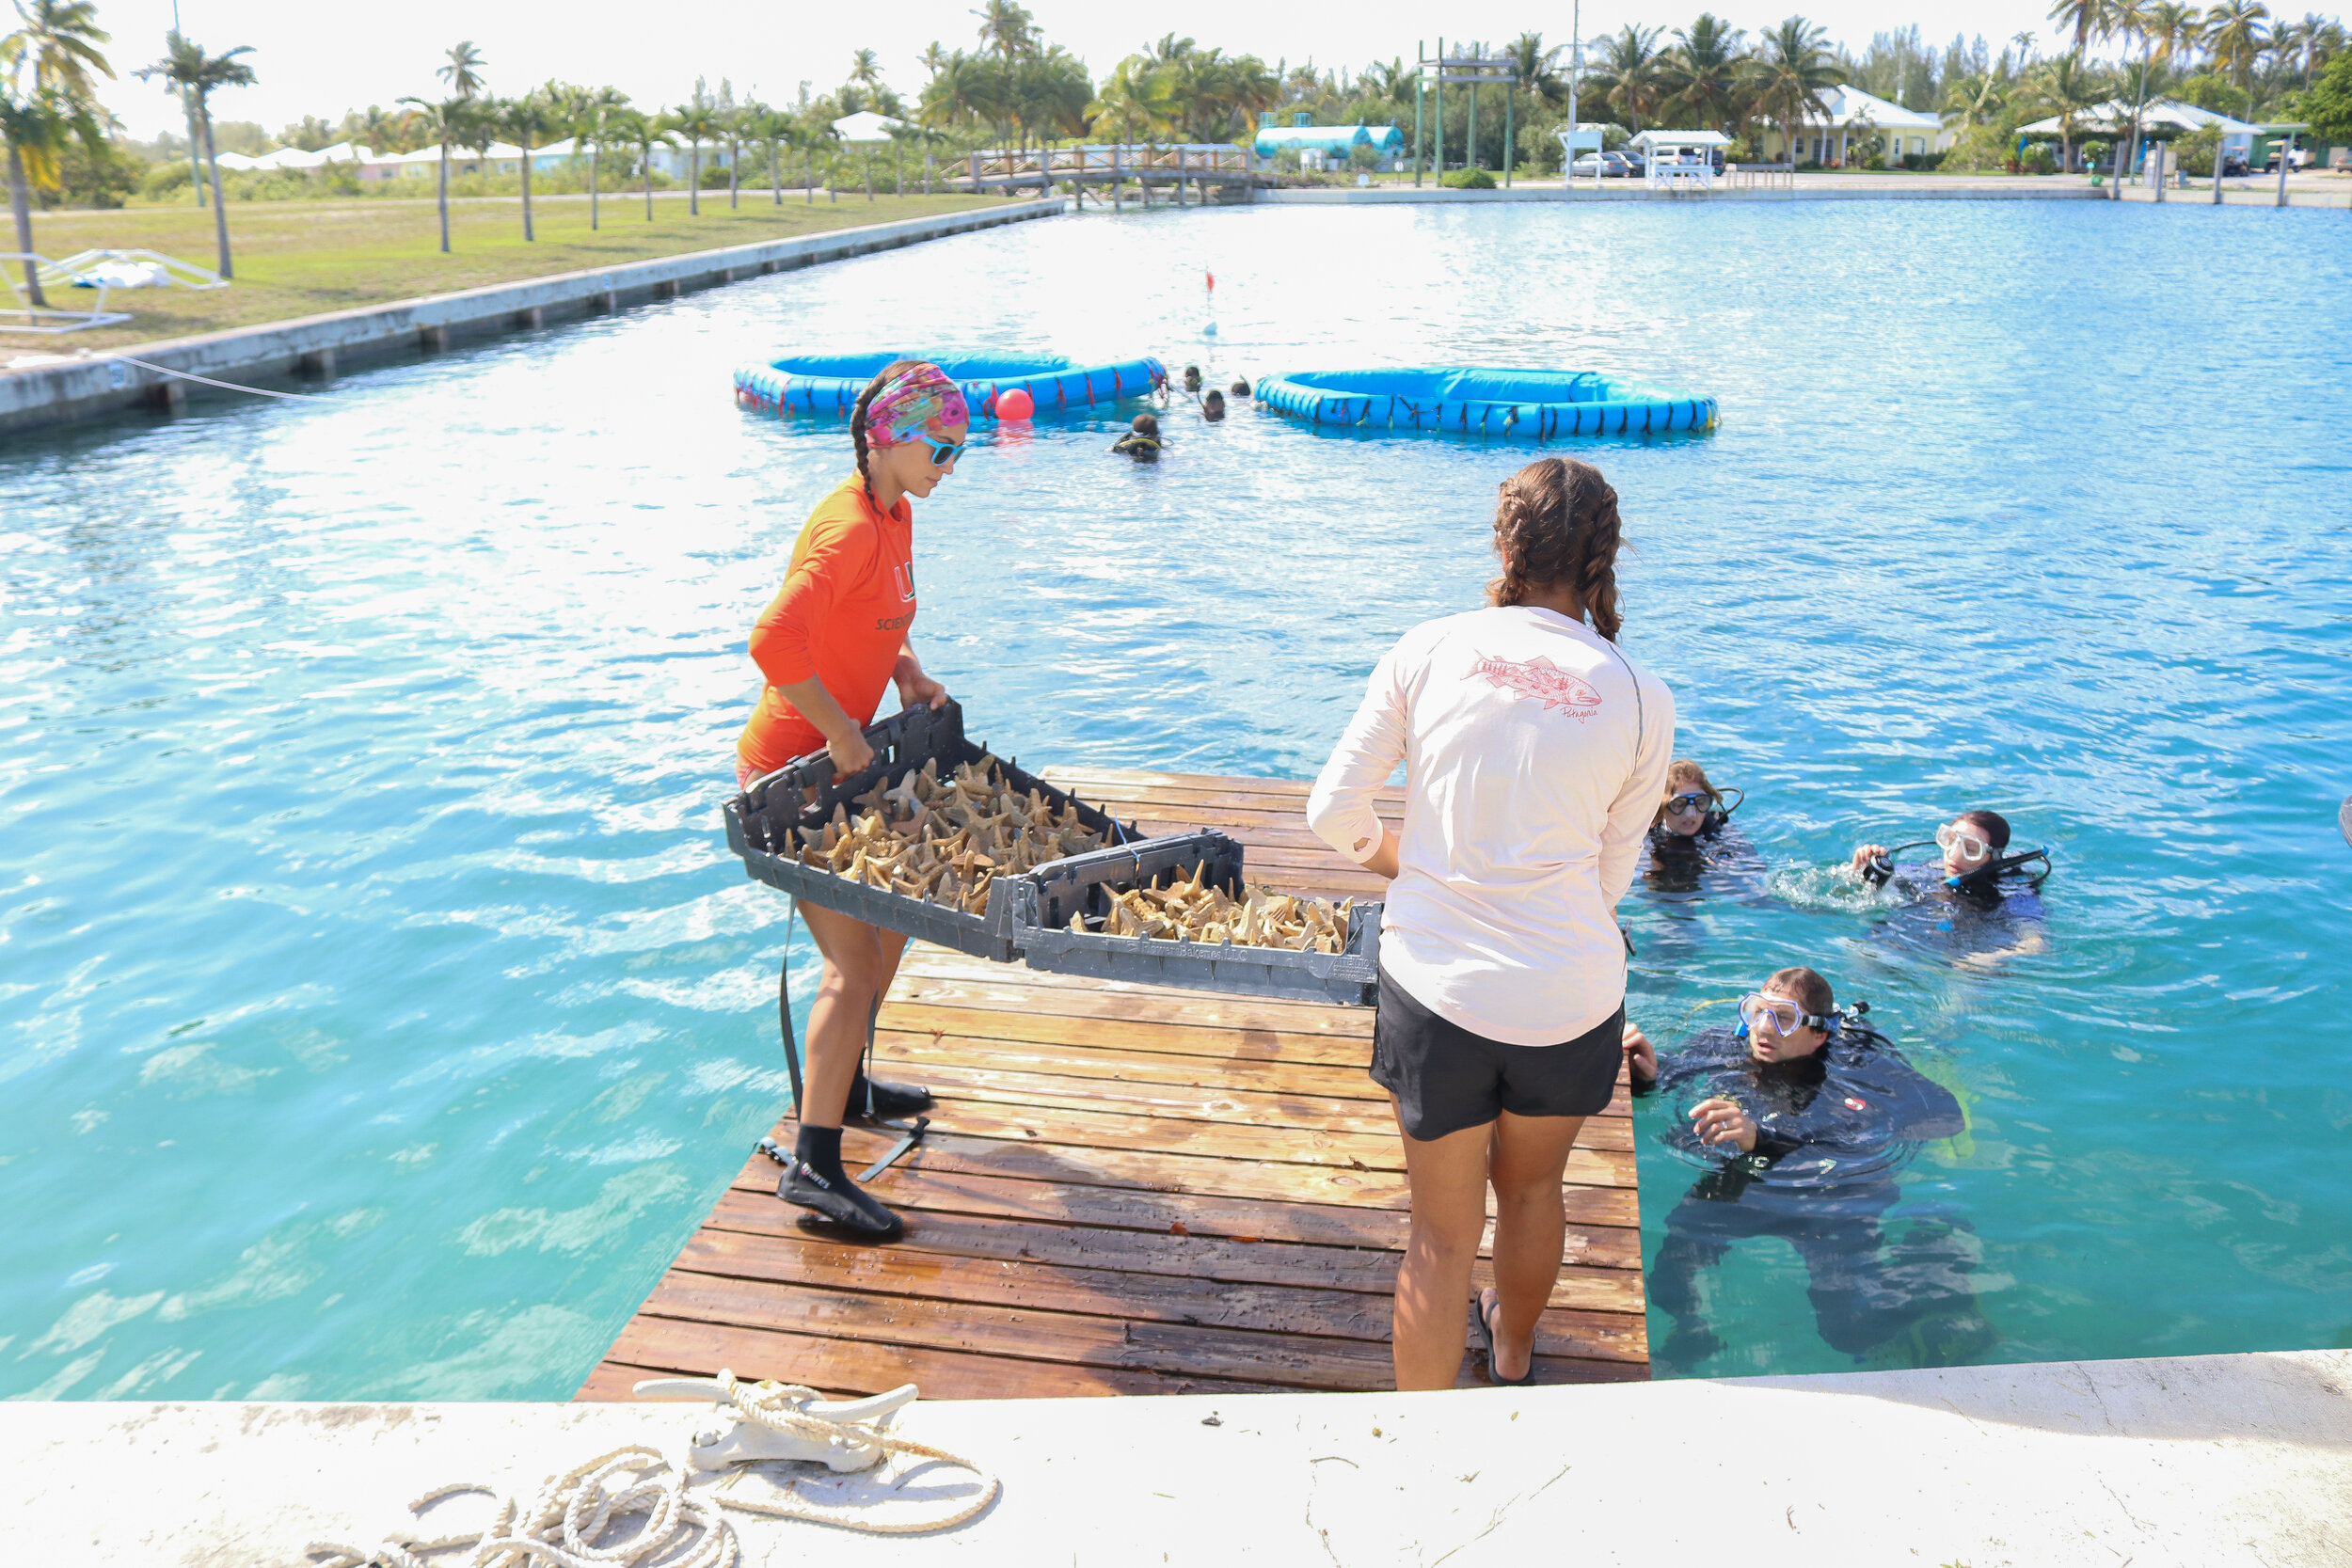 The coral team, consisting of workshop hosts, participants, and CEI interns, working together to deploy seeding units into Secore's pools.